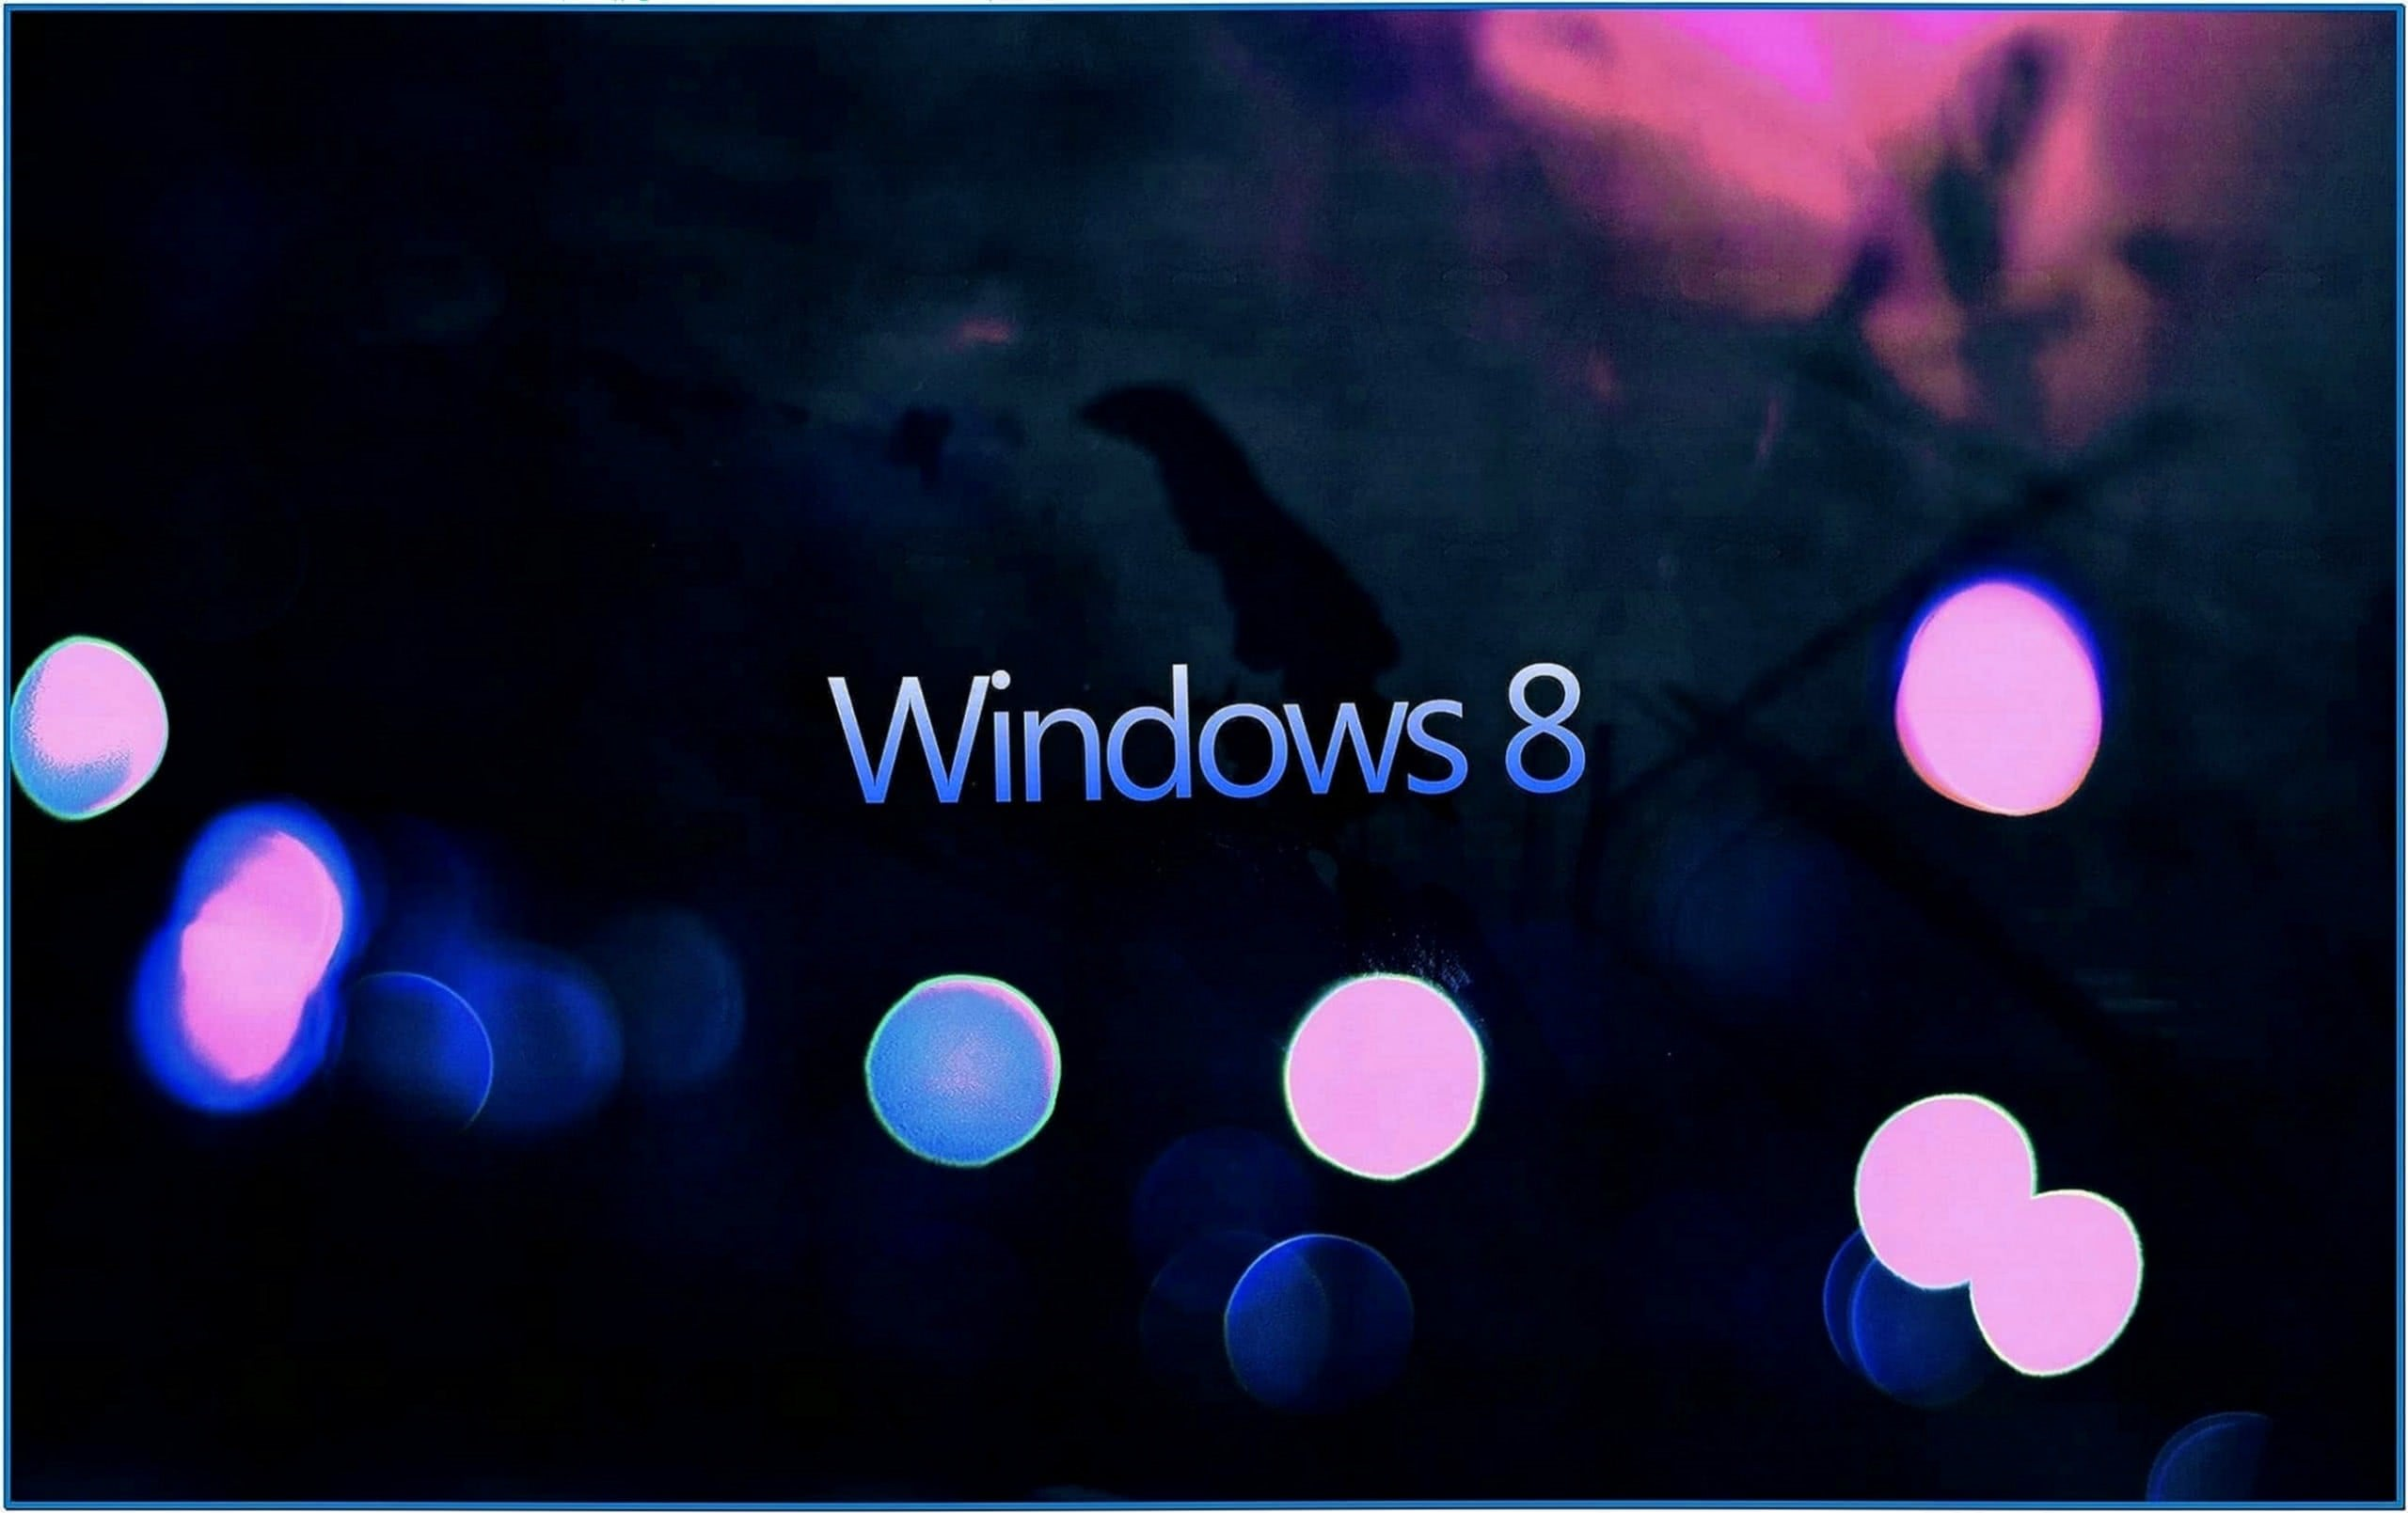 Screensaver Windows 8 Full HD